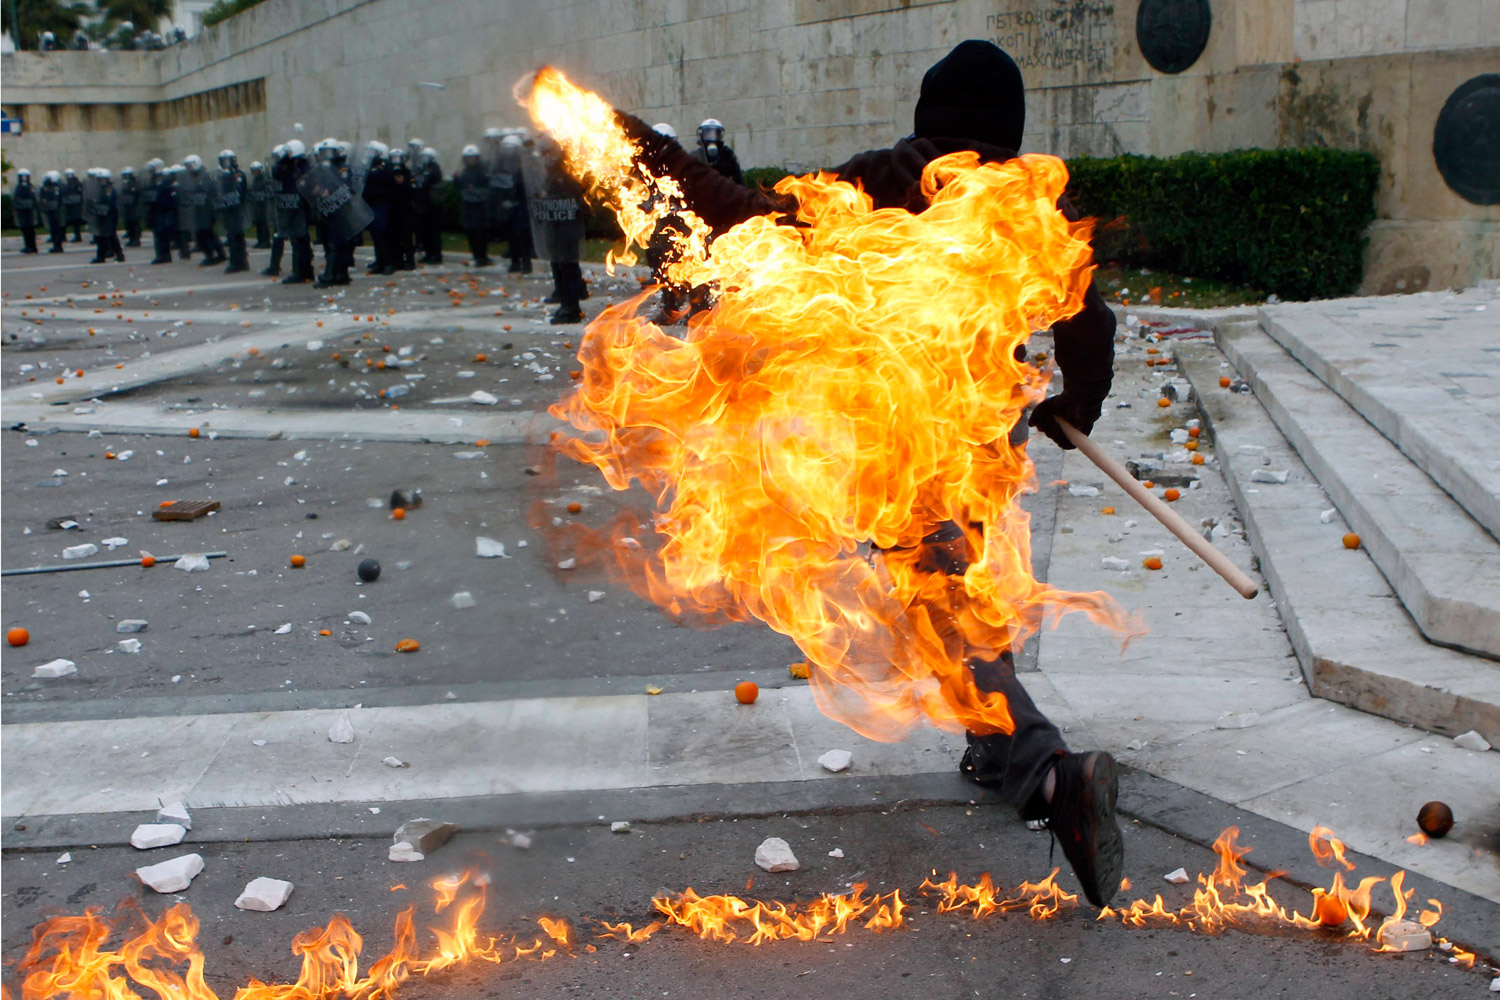 December 6, 2011. A protester hurls a petrol bomb toward riot police in Athens' Syntagma Square, the center of months of demonstrations in Greece. Activists were marking the anniversary of the 2008 shooting of a student by police.